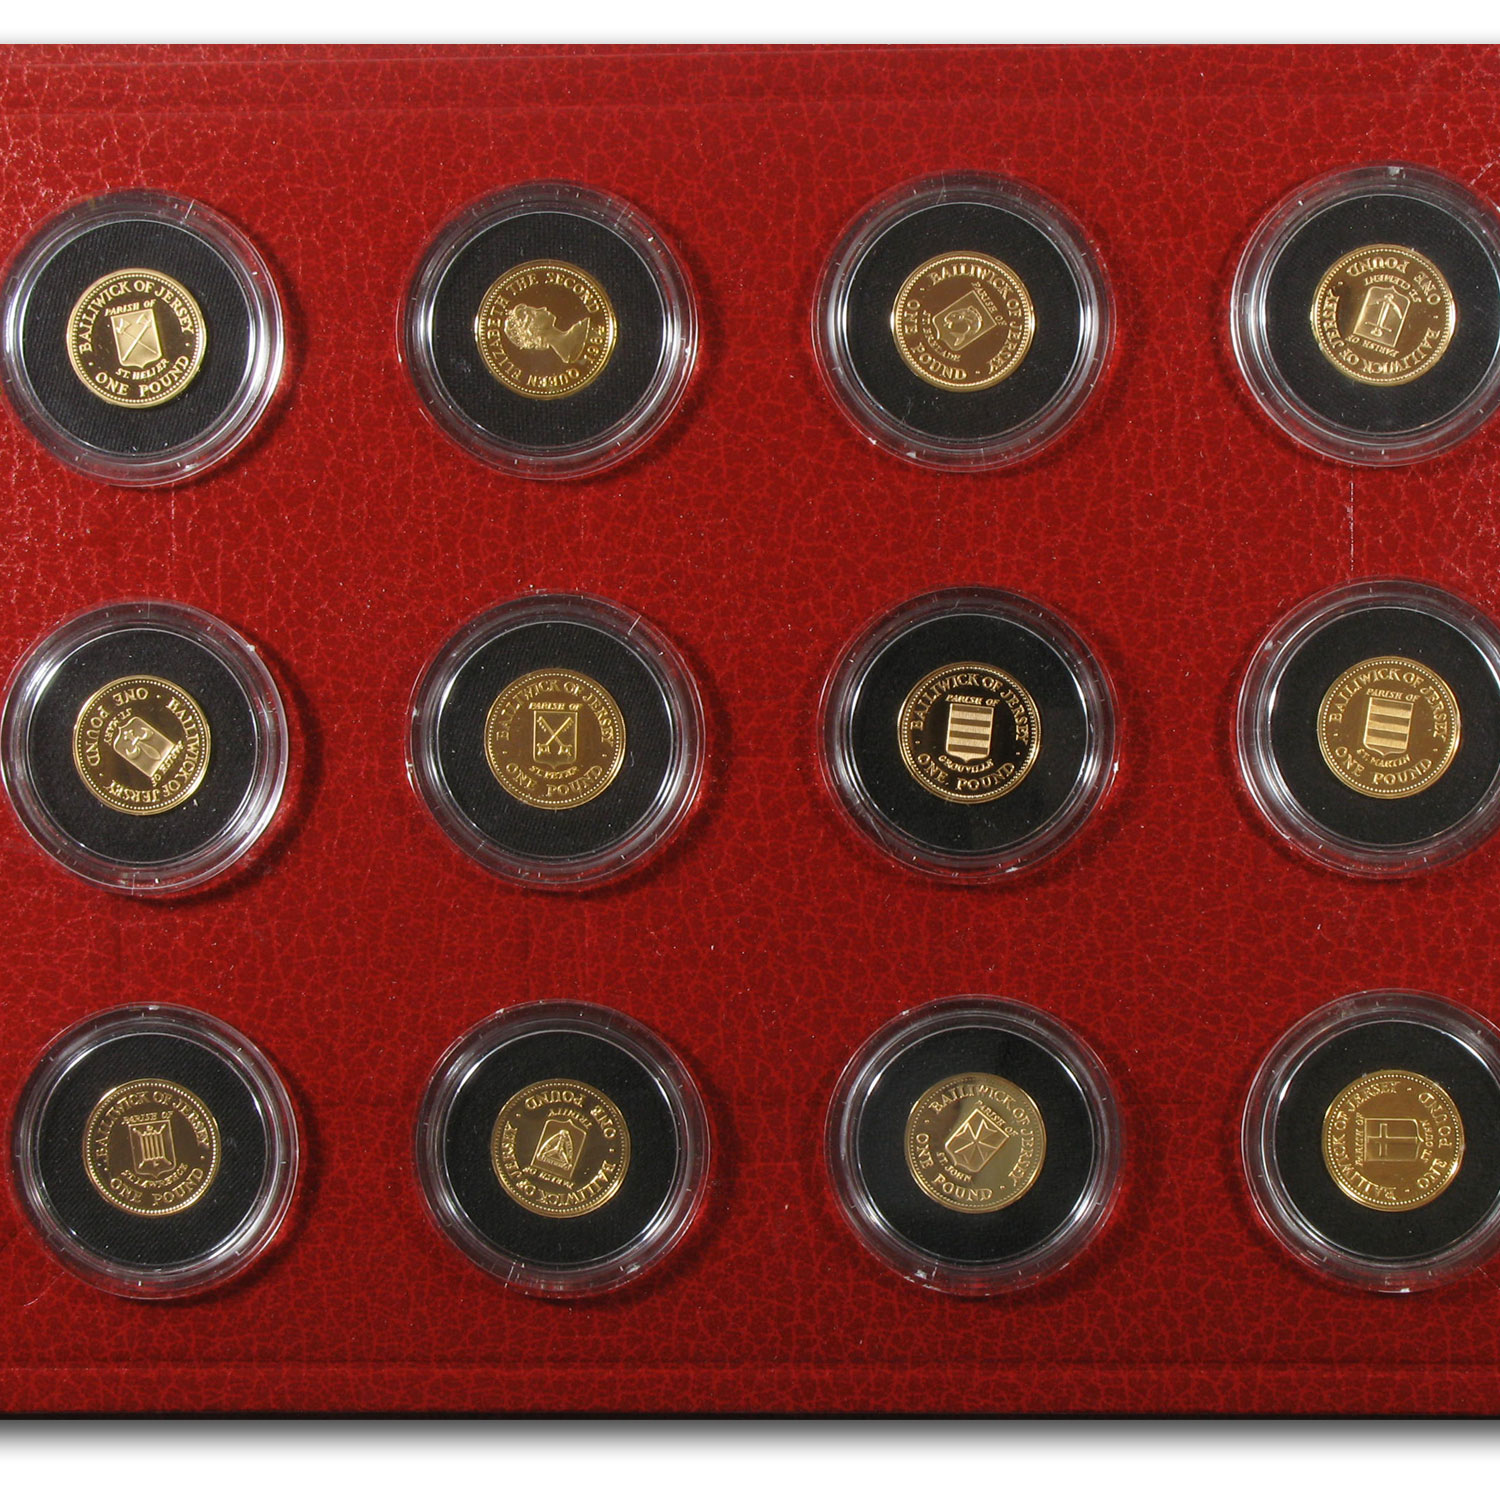 1983-1989 States of Jersey Gold Proof 12 Coin Set